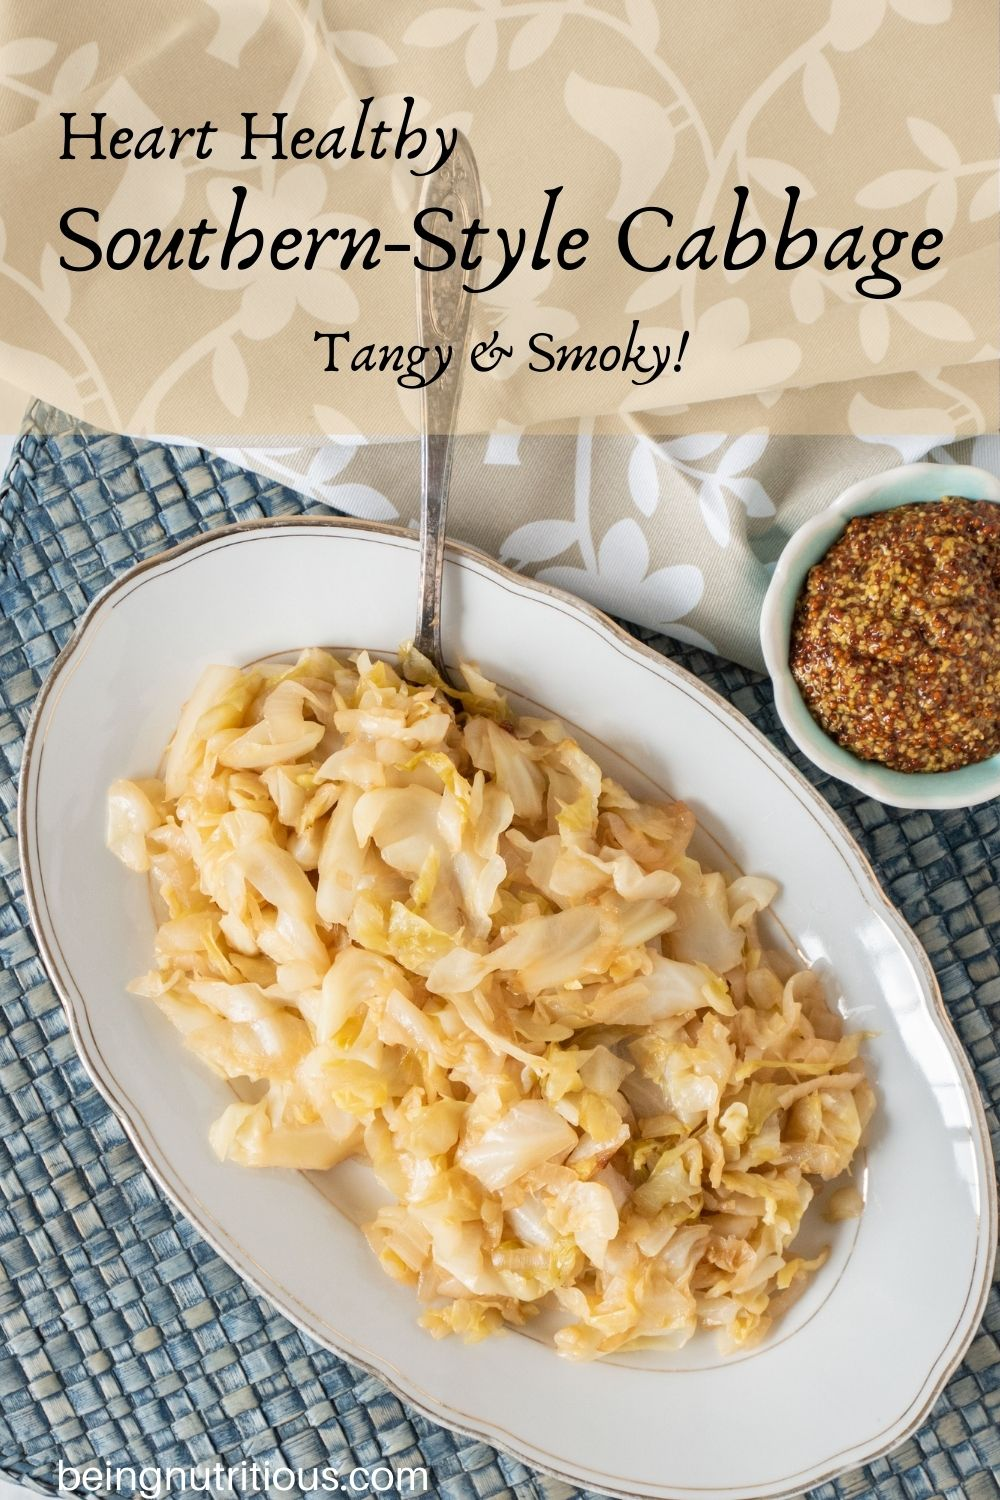 Sautéed cabbage on a plate. Text overlay: Heart Healthy Southern-style cabbage; tangy and smoky!